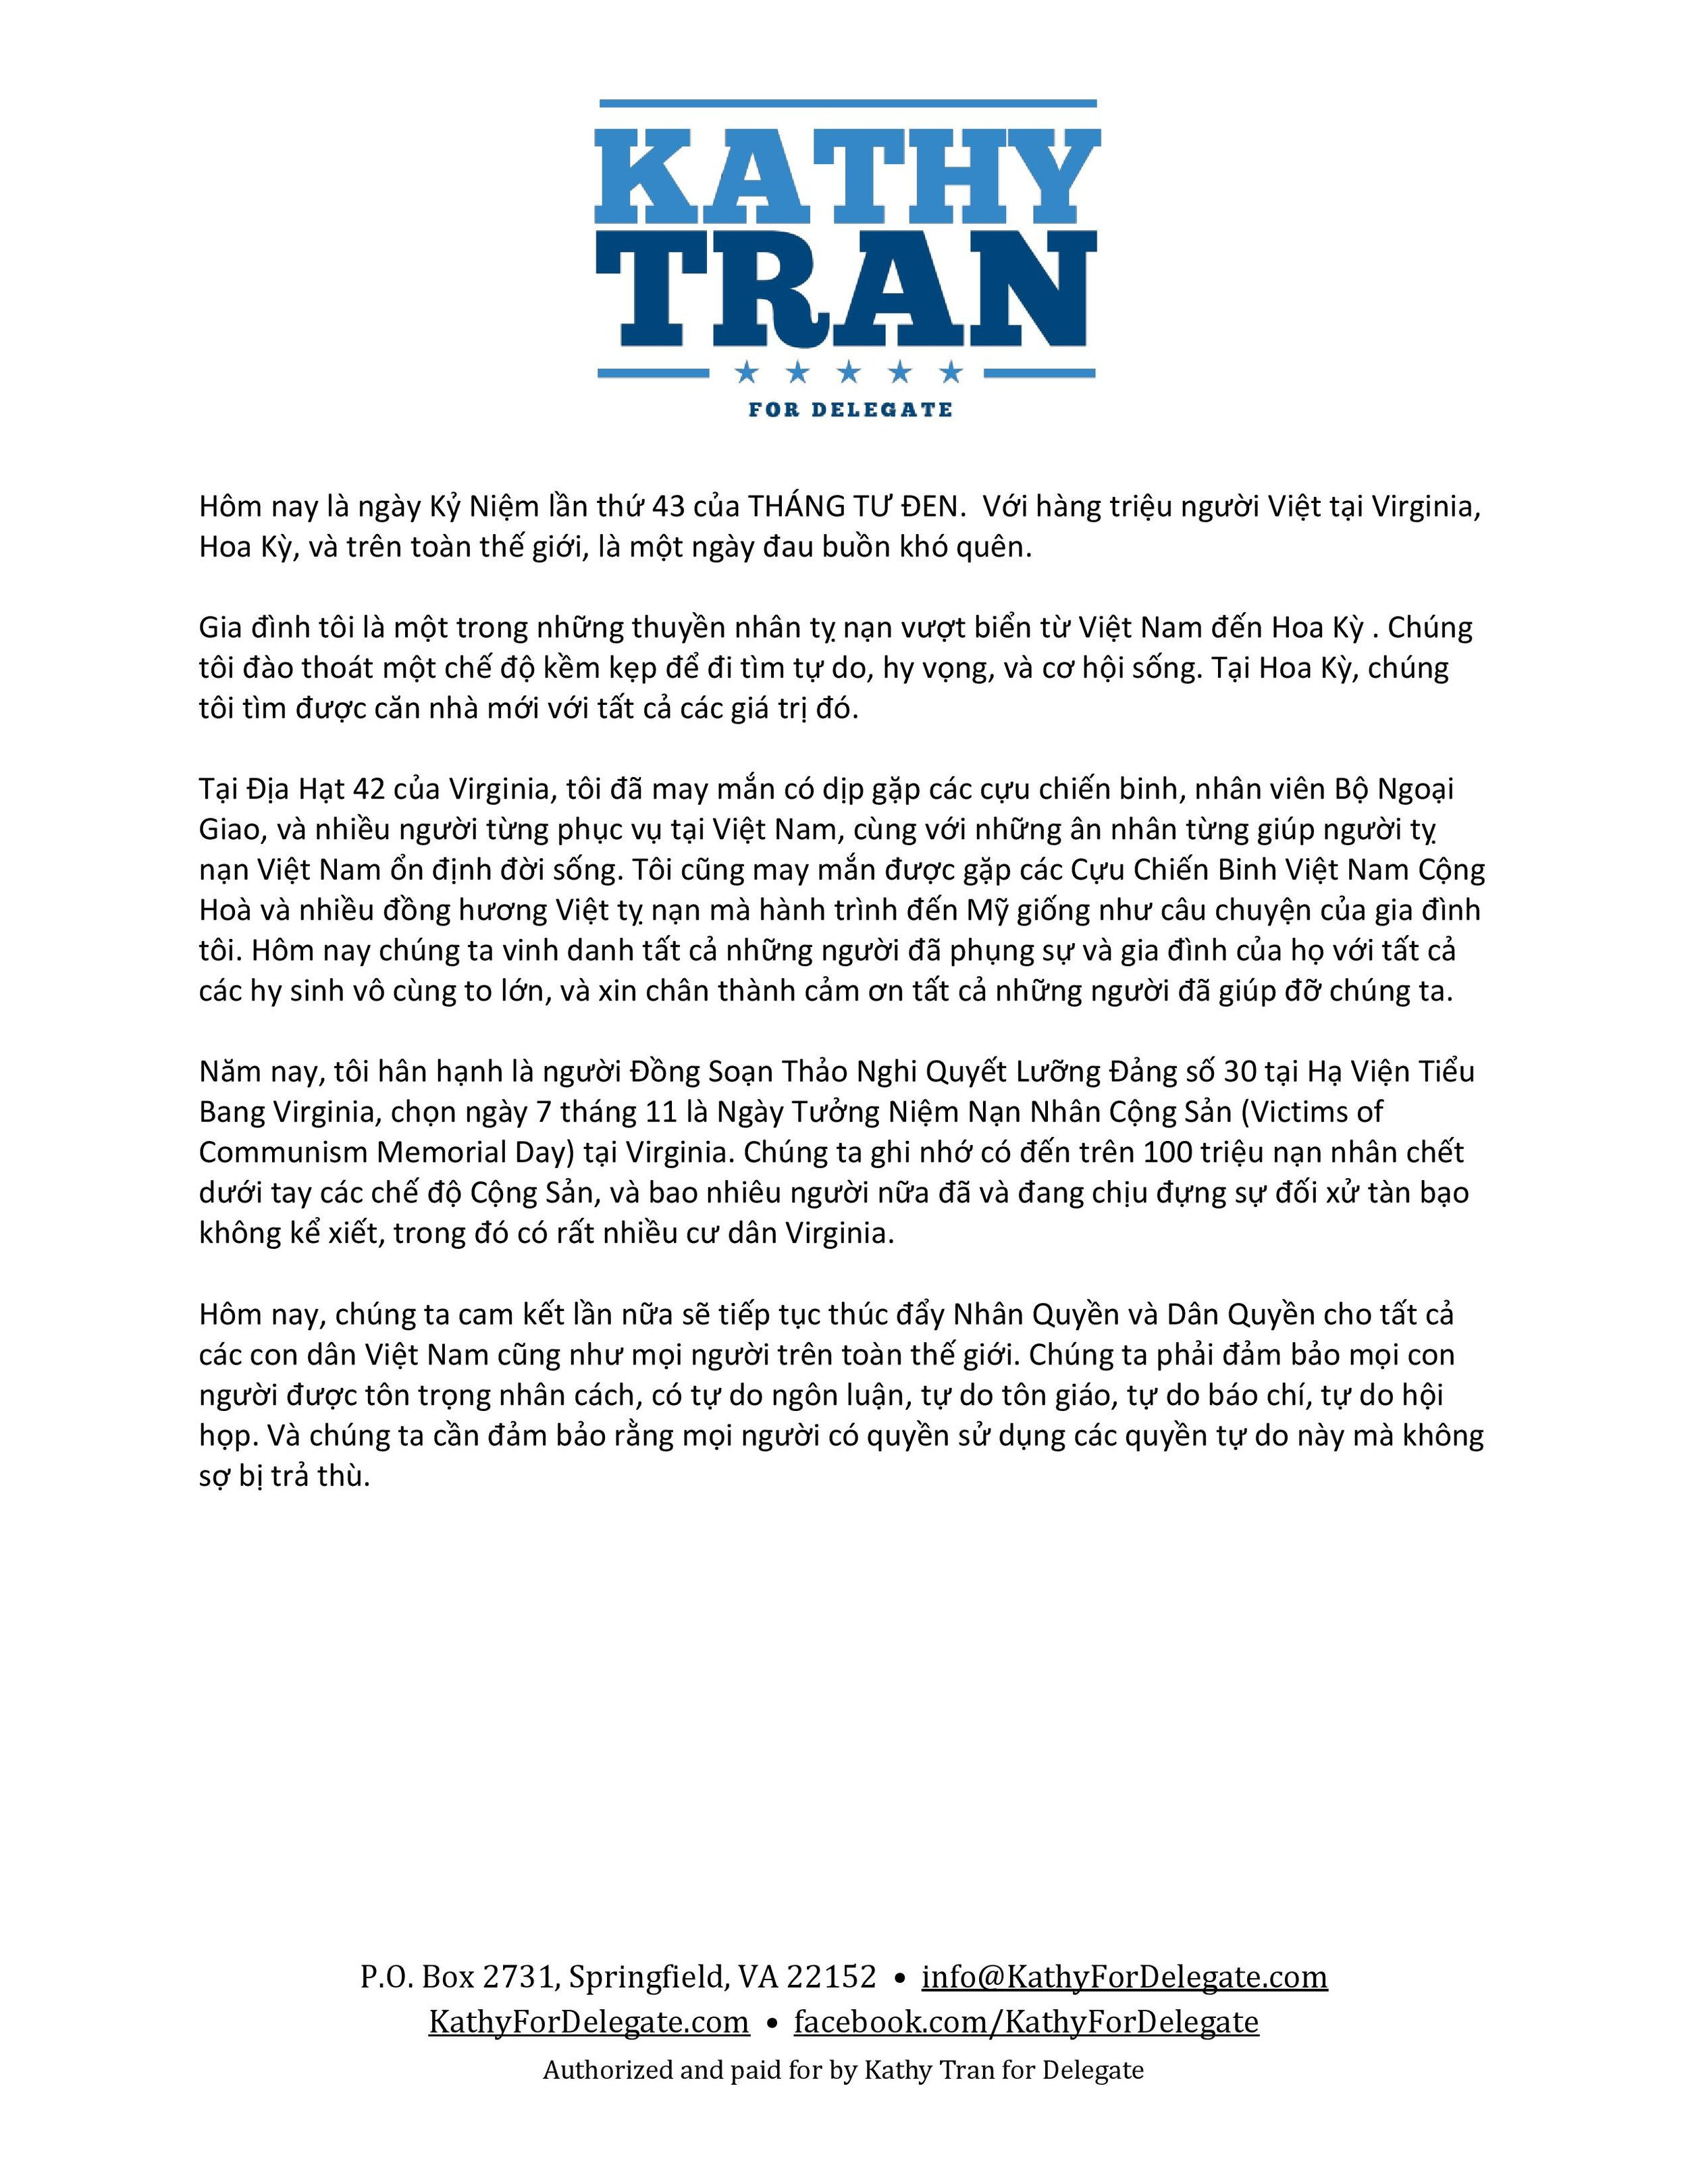 Del Tran statement on April 30 2018b (1)-page-002.jpg